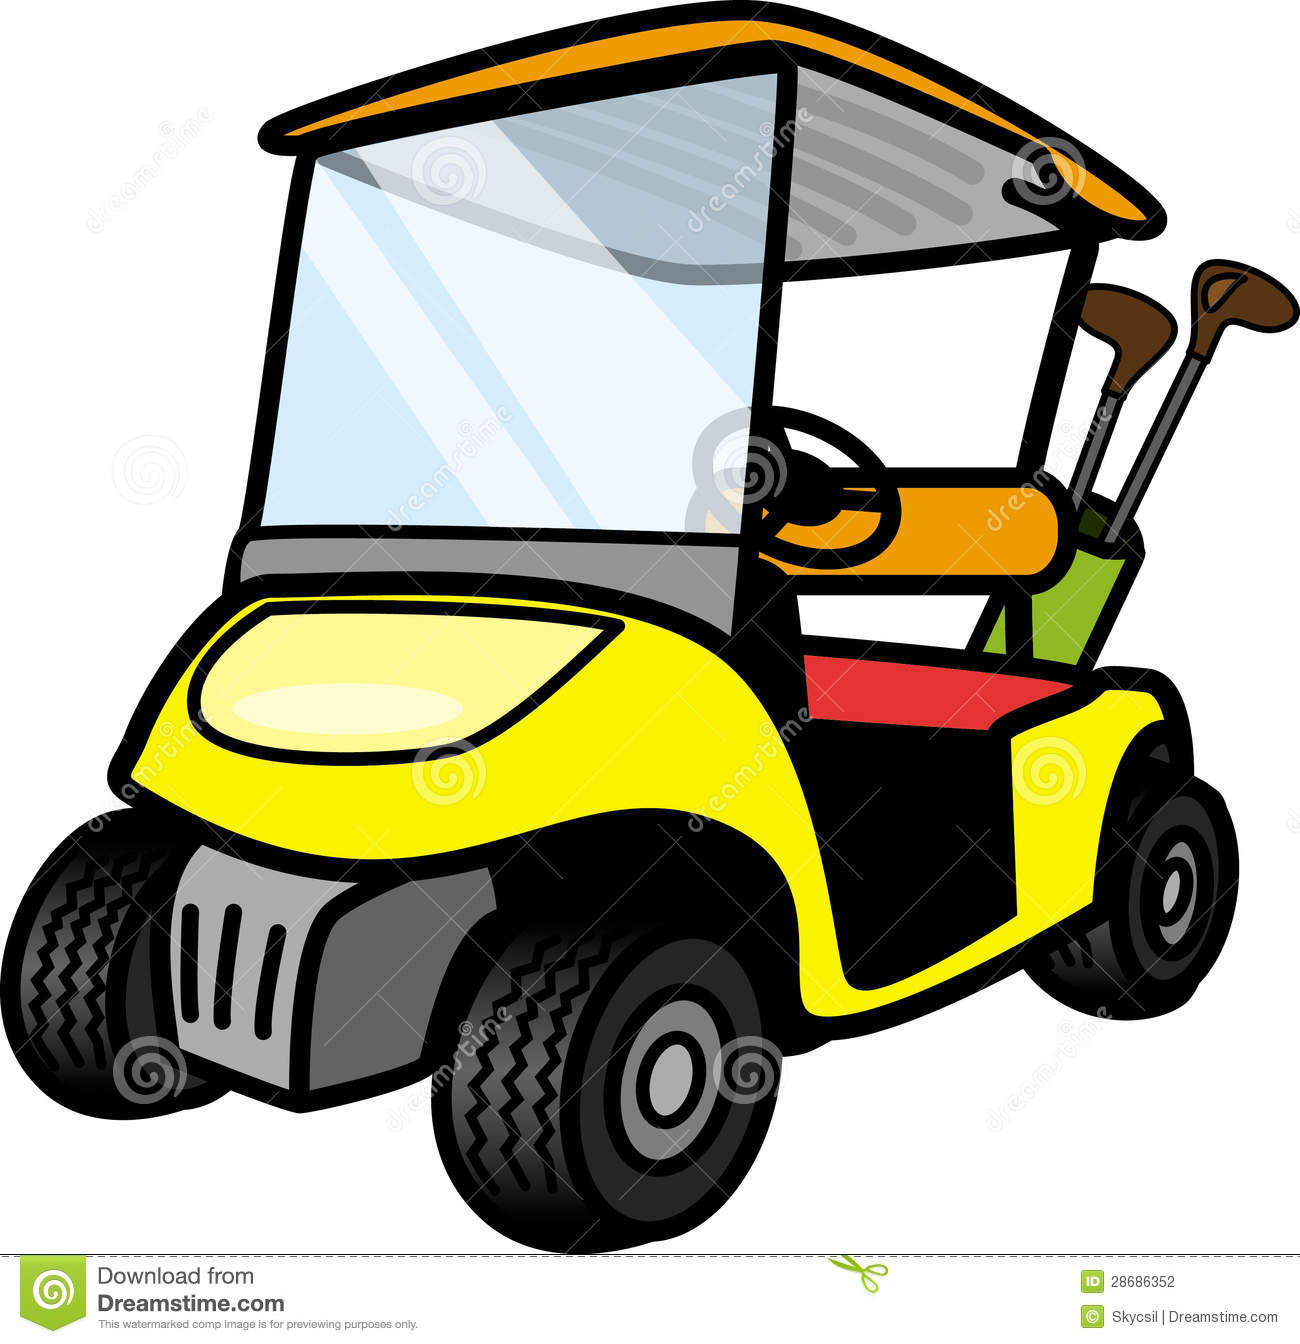 Cartoon Golf Cart Clipart #1 - Golf Cart Clipart